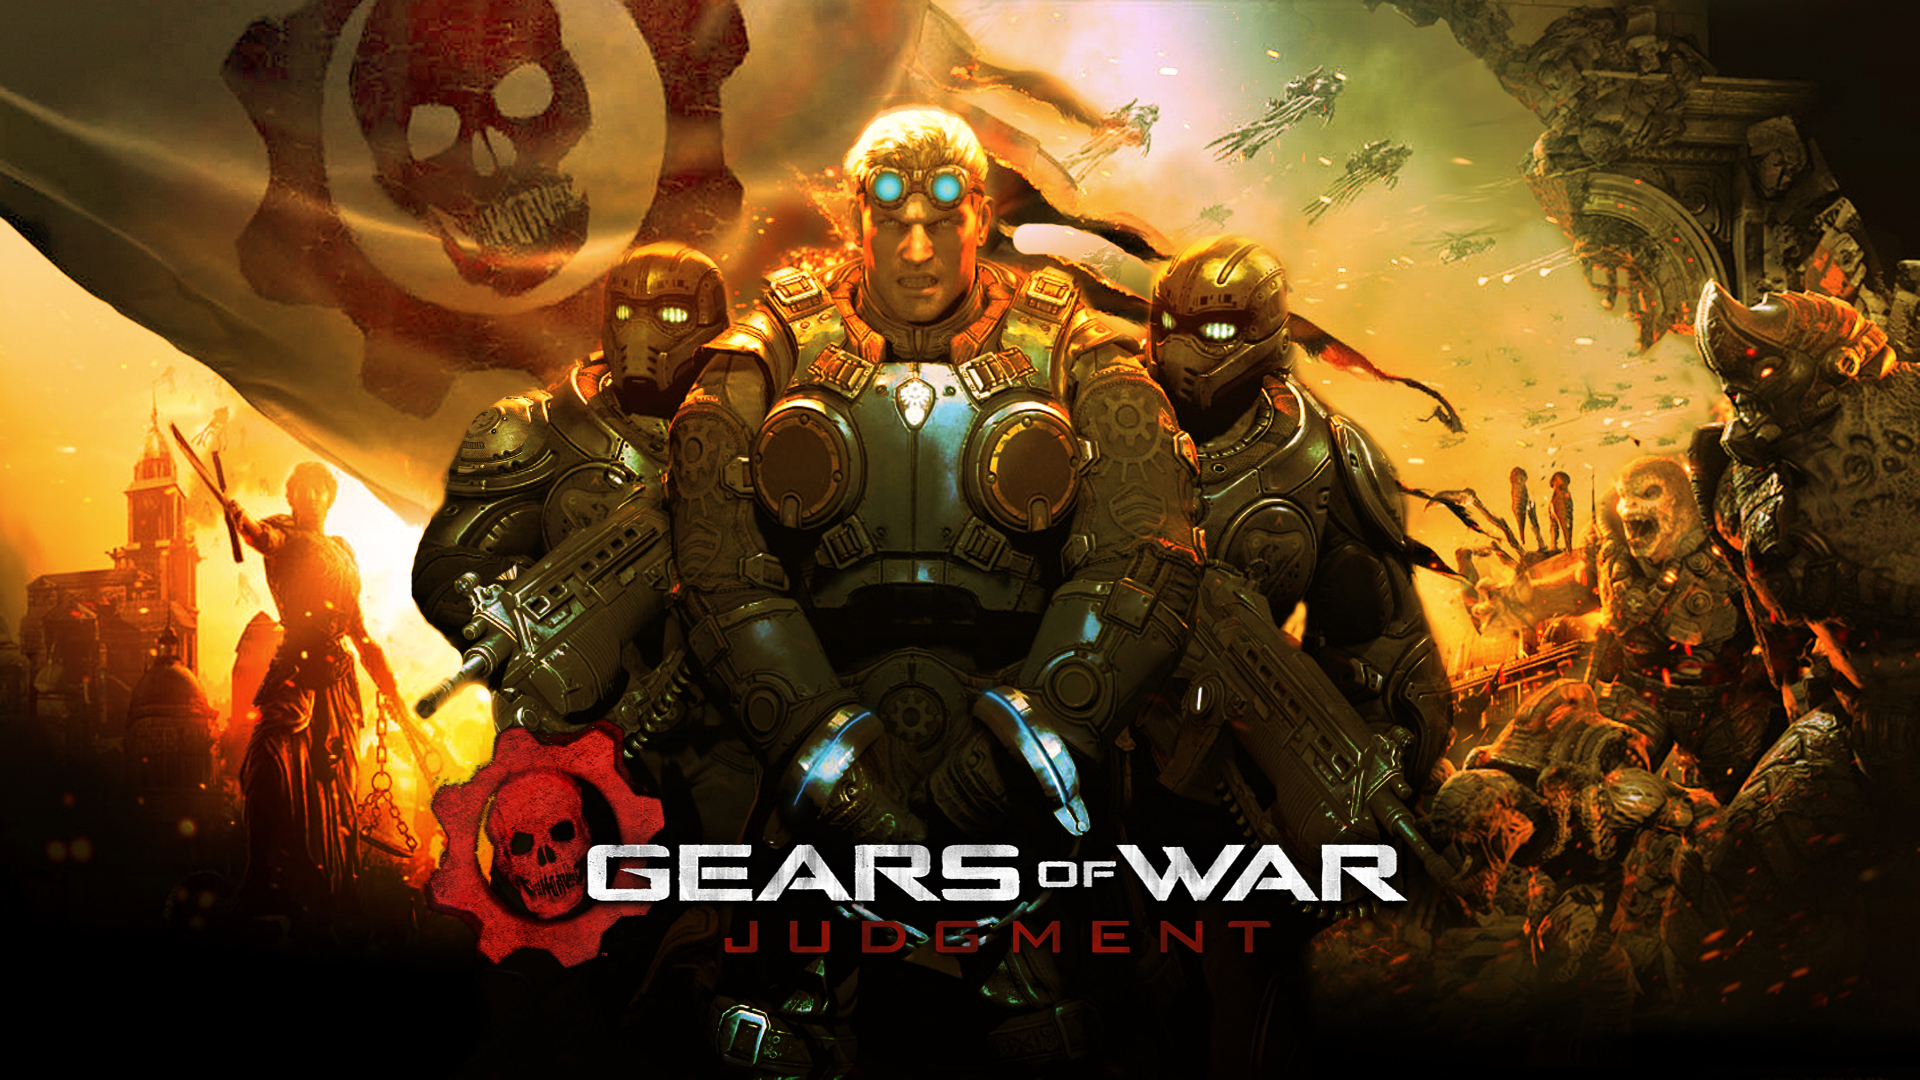 Future Gears of War Judgment players heading to the largest game retailer will be happy to know pre-ordering through Gamestop grants you much more than a ...